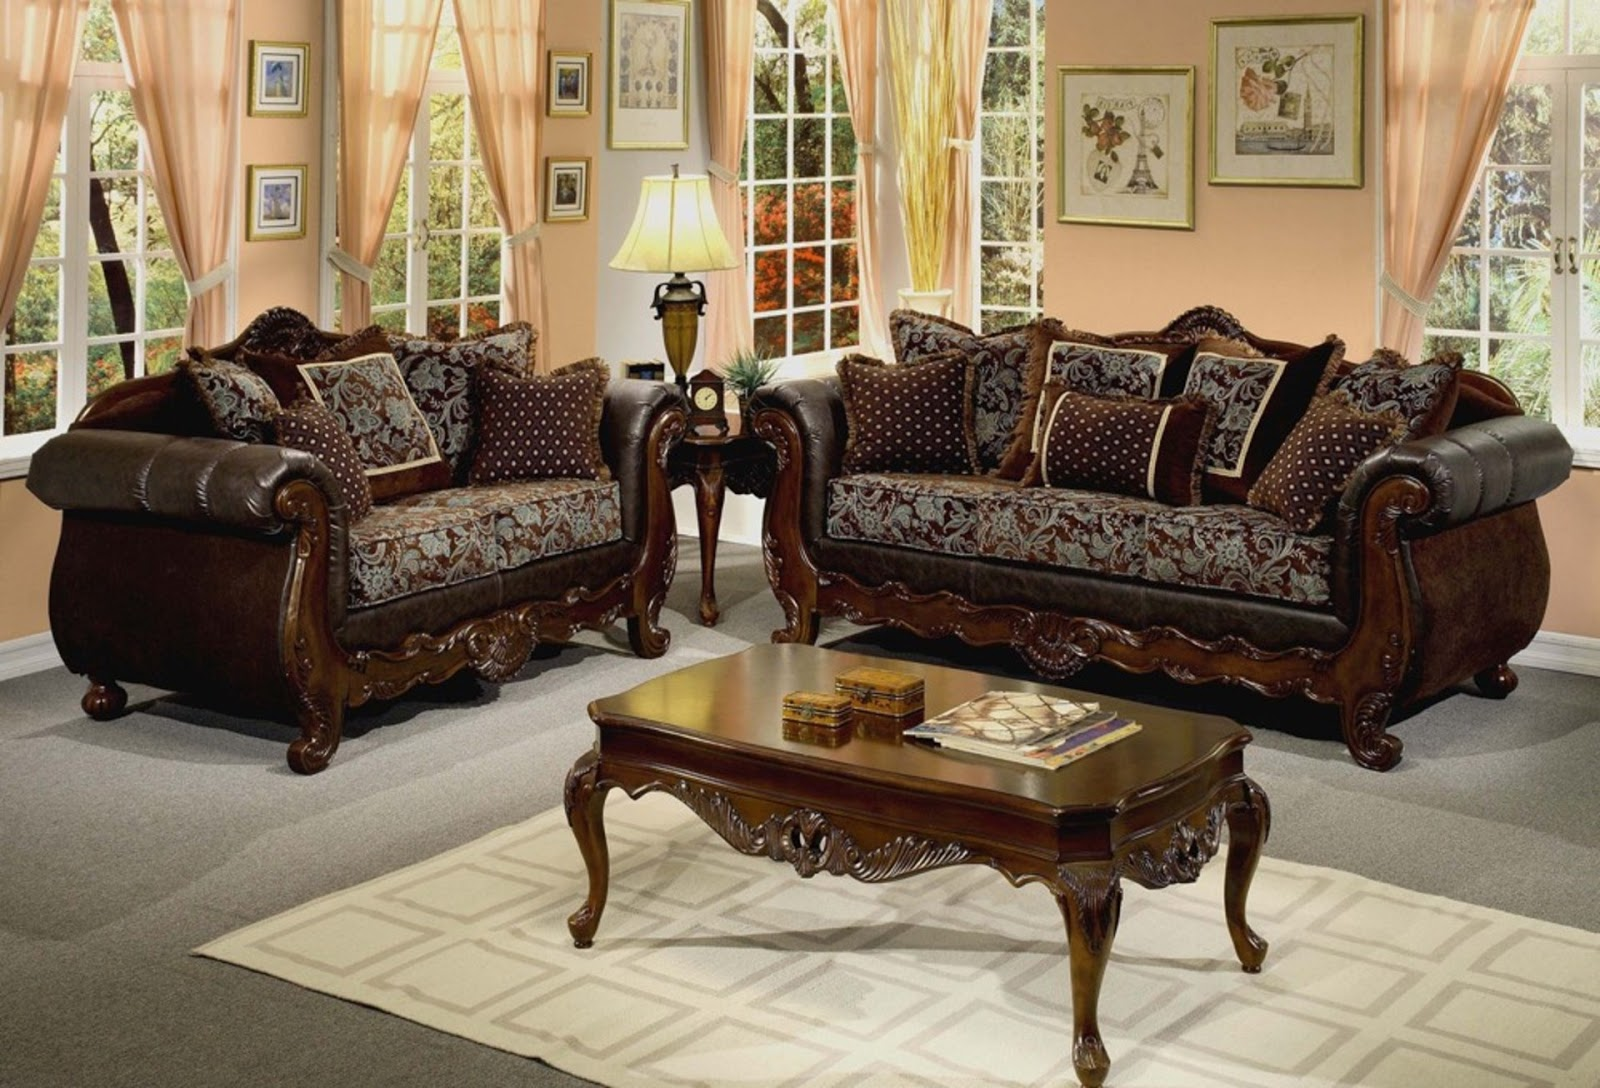 Complete your living room with their warm look vintage sectional sofa or couch sets will be suitable to pair other furniture set since those neutral